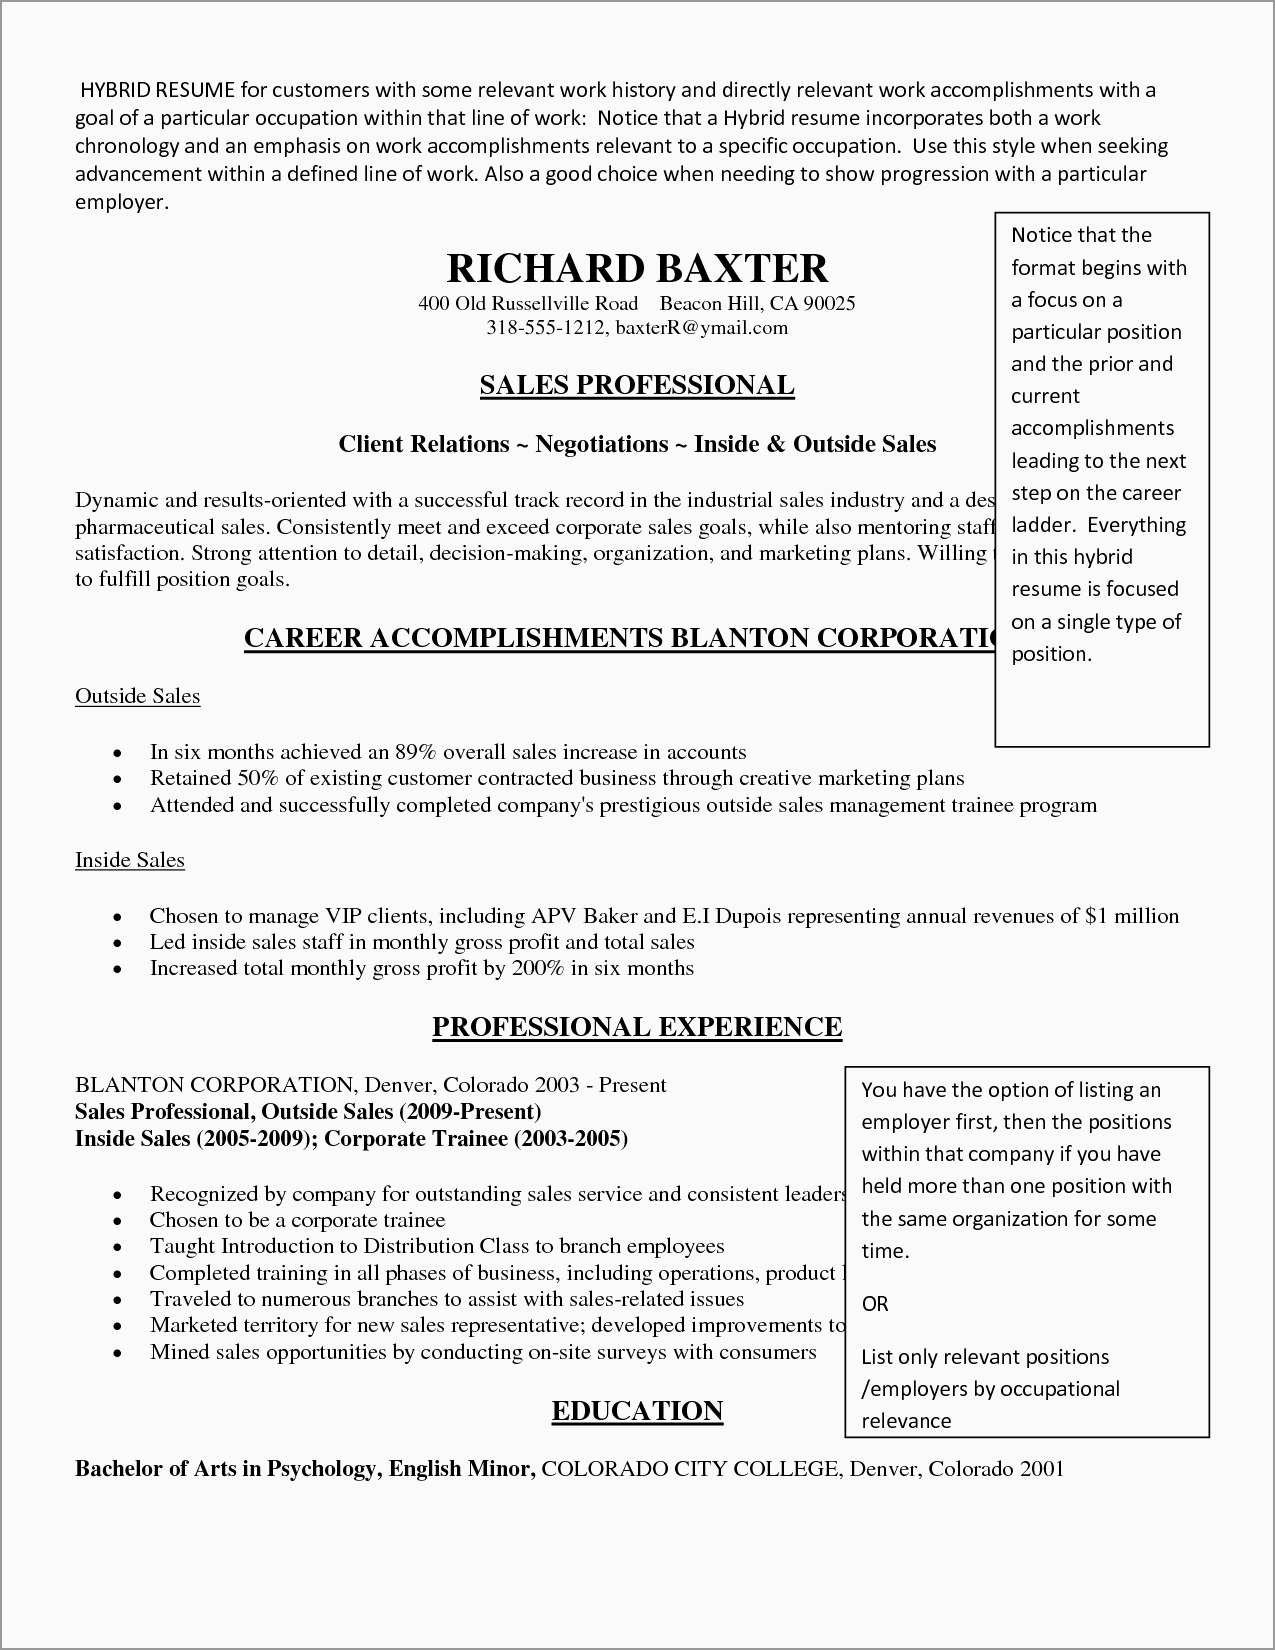 Free Hybrid Resume Template Word Prettier Hybrid Resume Template Best Solutions Of Sample Hybrid